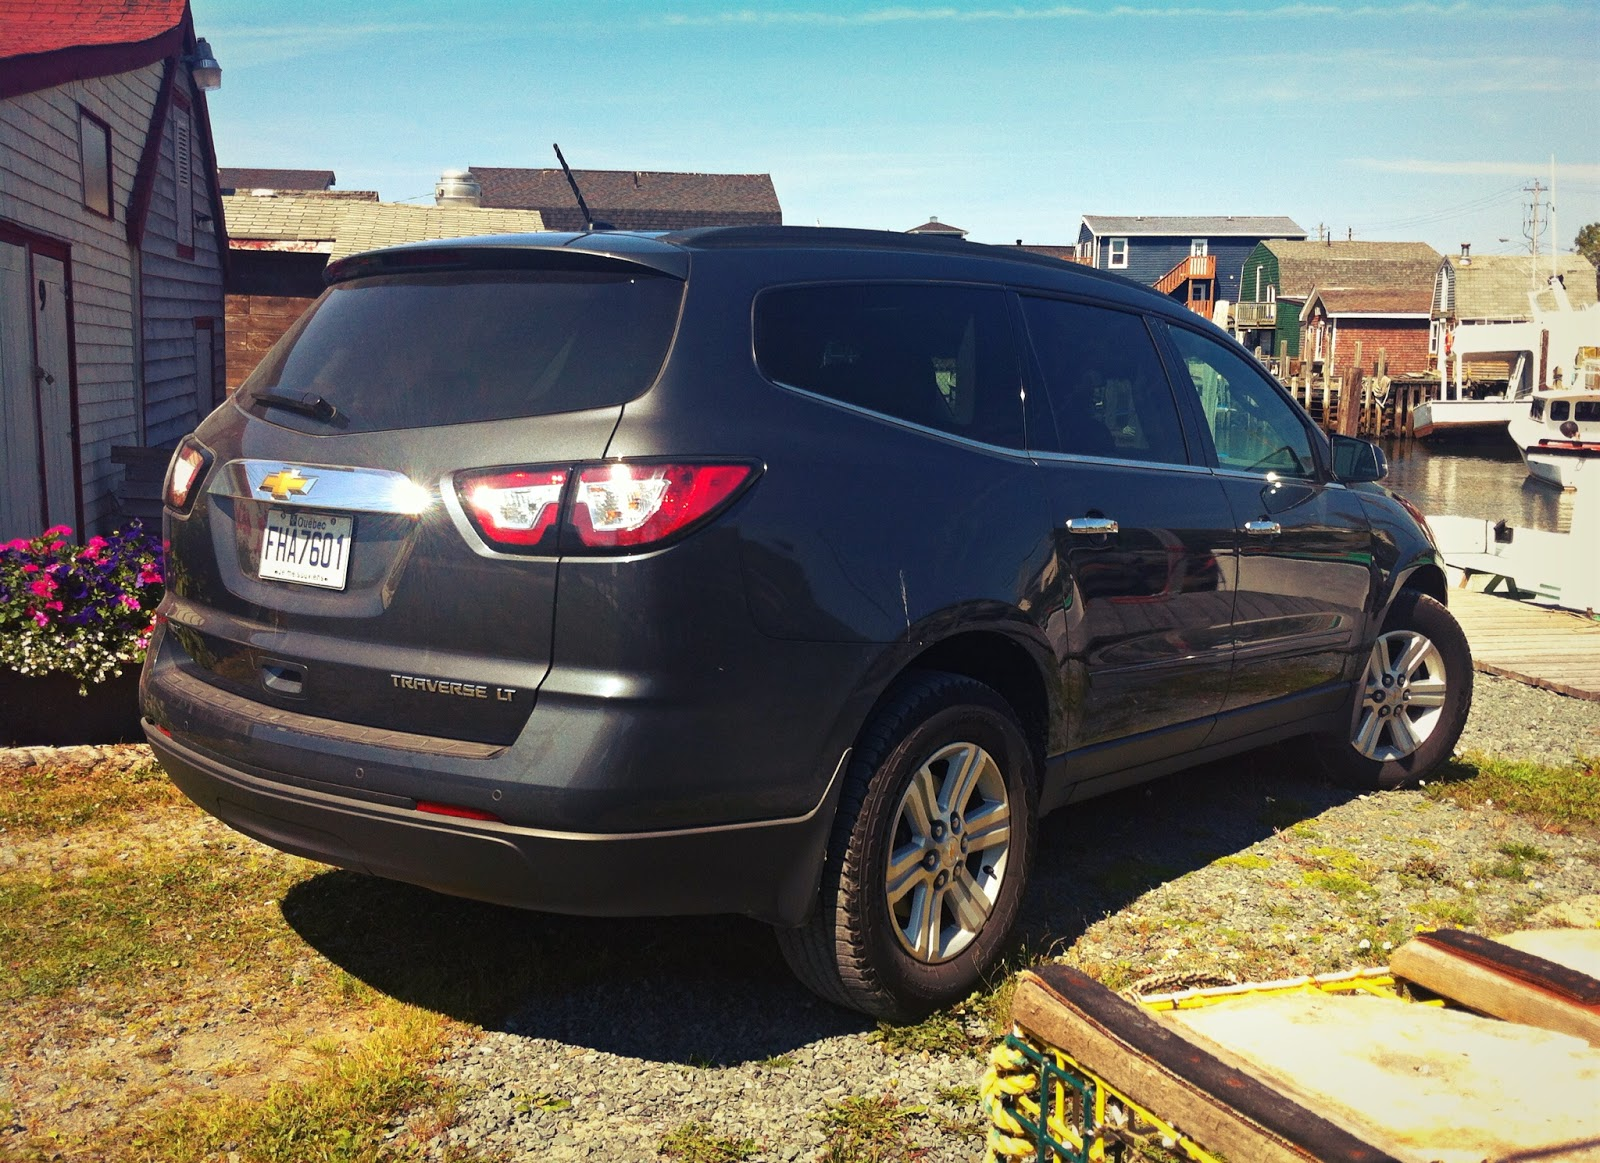 2014 Chevrolet Traverse LT AWD Review - Is Bigger Better? -